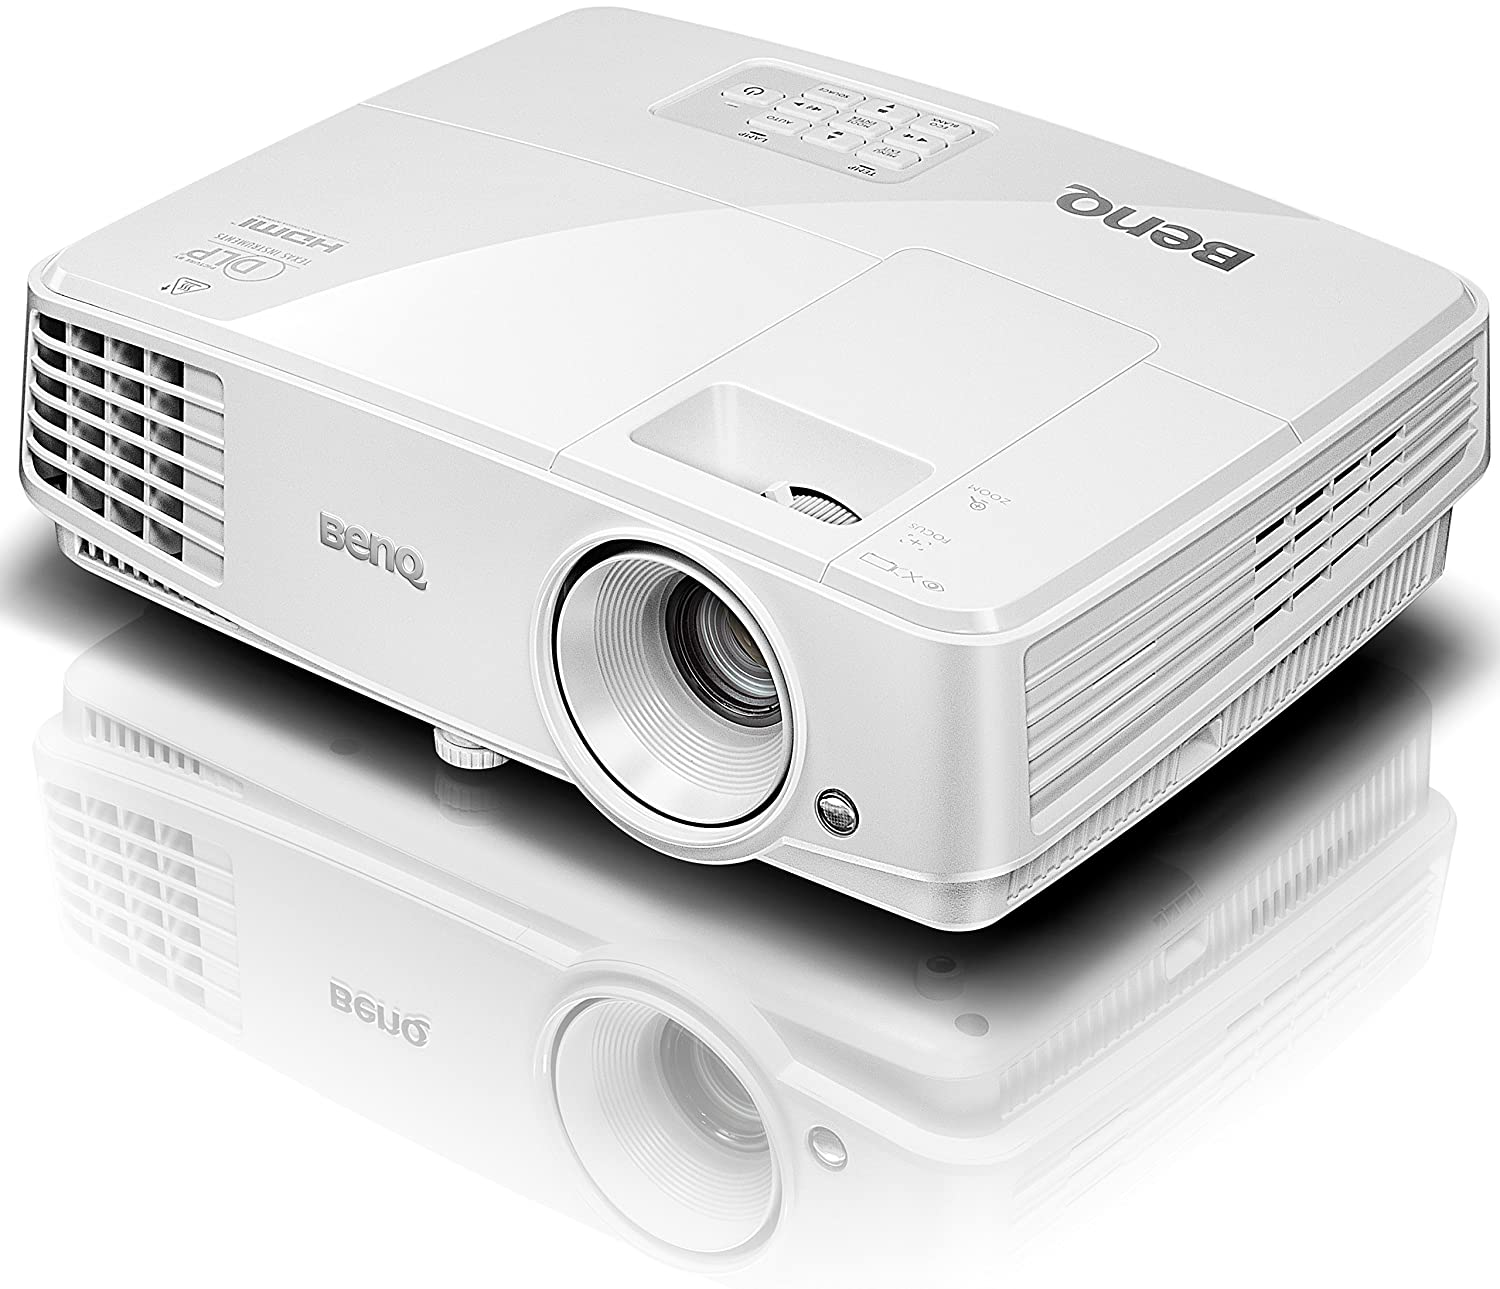 Amazon.com: BenQ MS527 3D DLP Projector SVGA 800X600 3300 ...